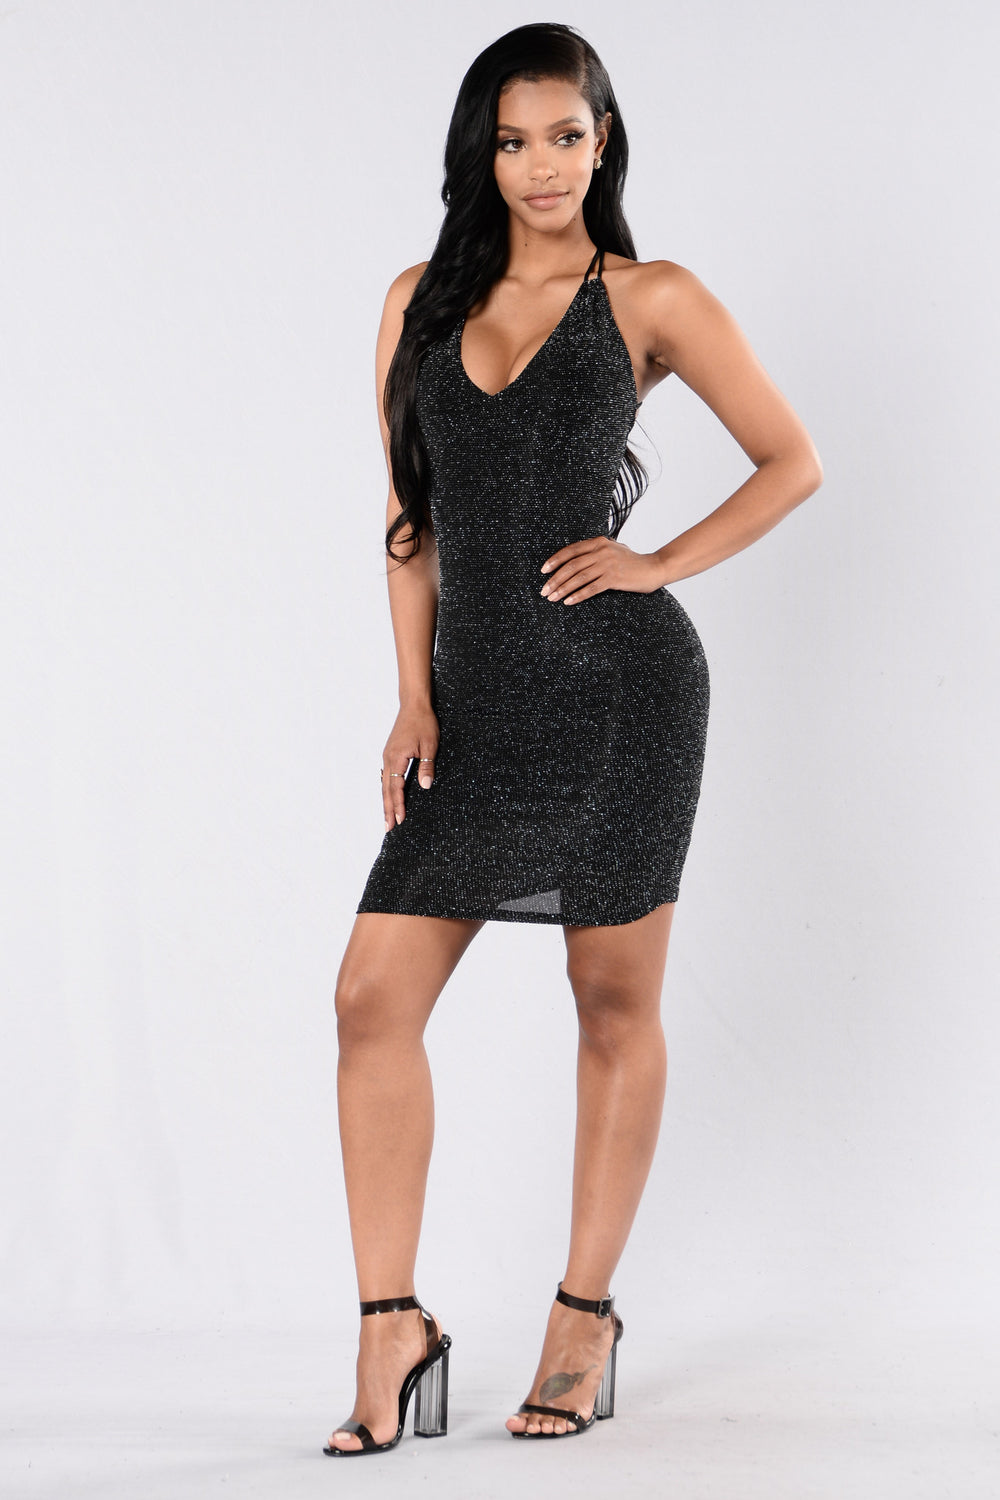 Quiet Love Dress - Black/Silver